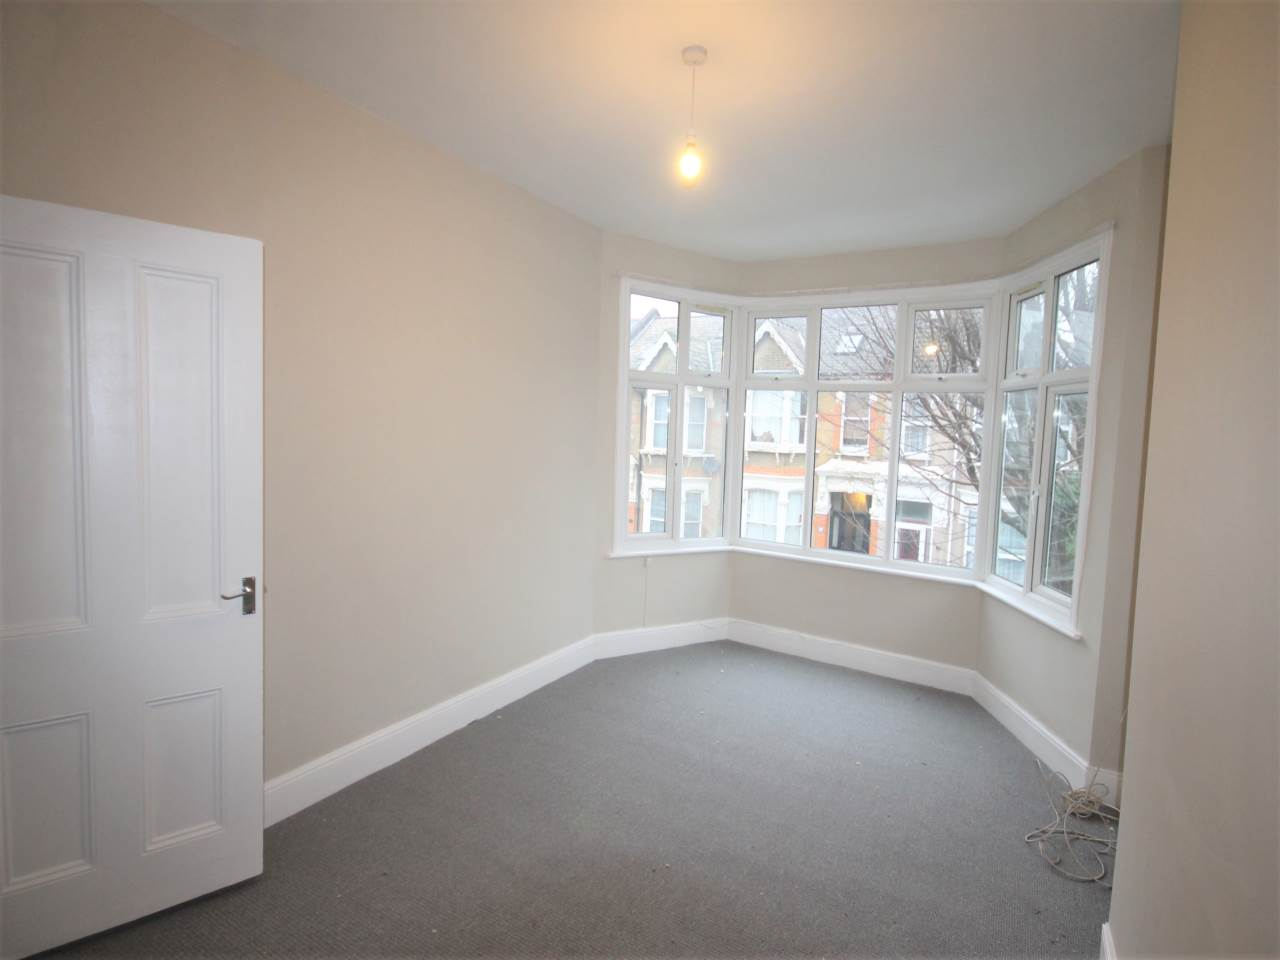 2 bed flat to rent in Cleveland Park Crescent, Walthamstow 0